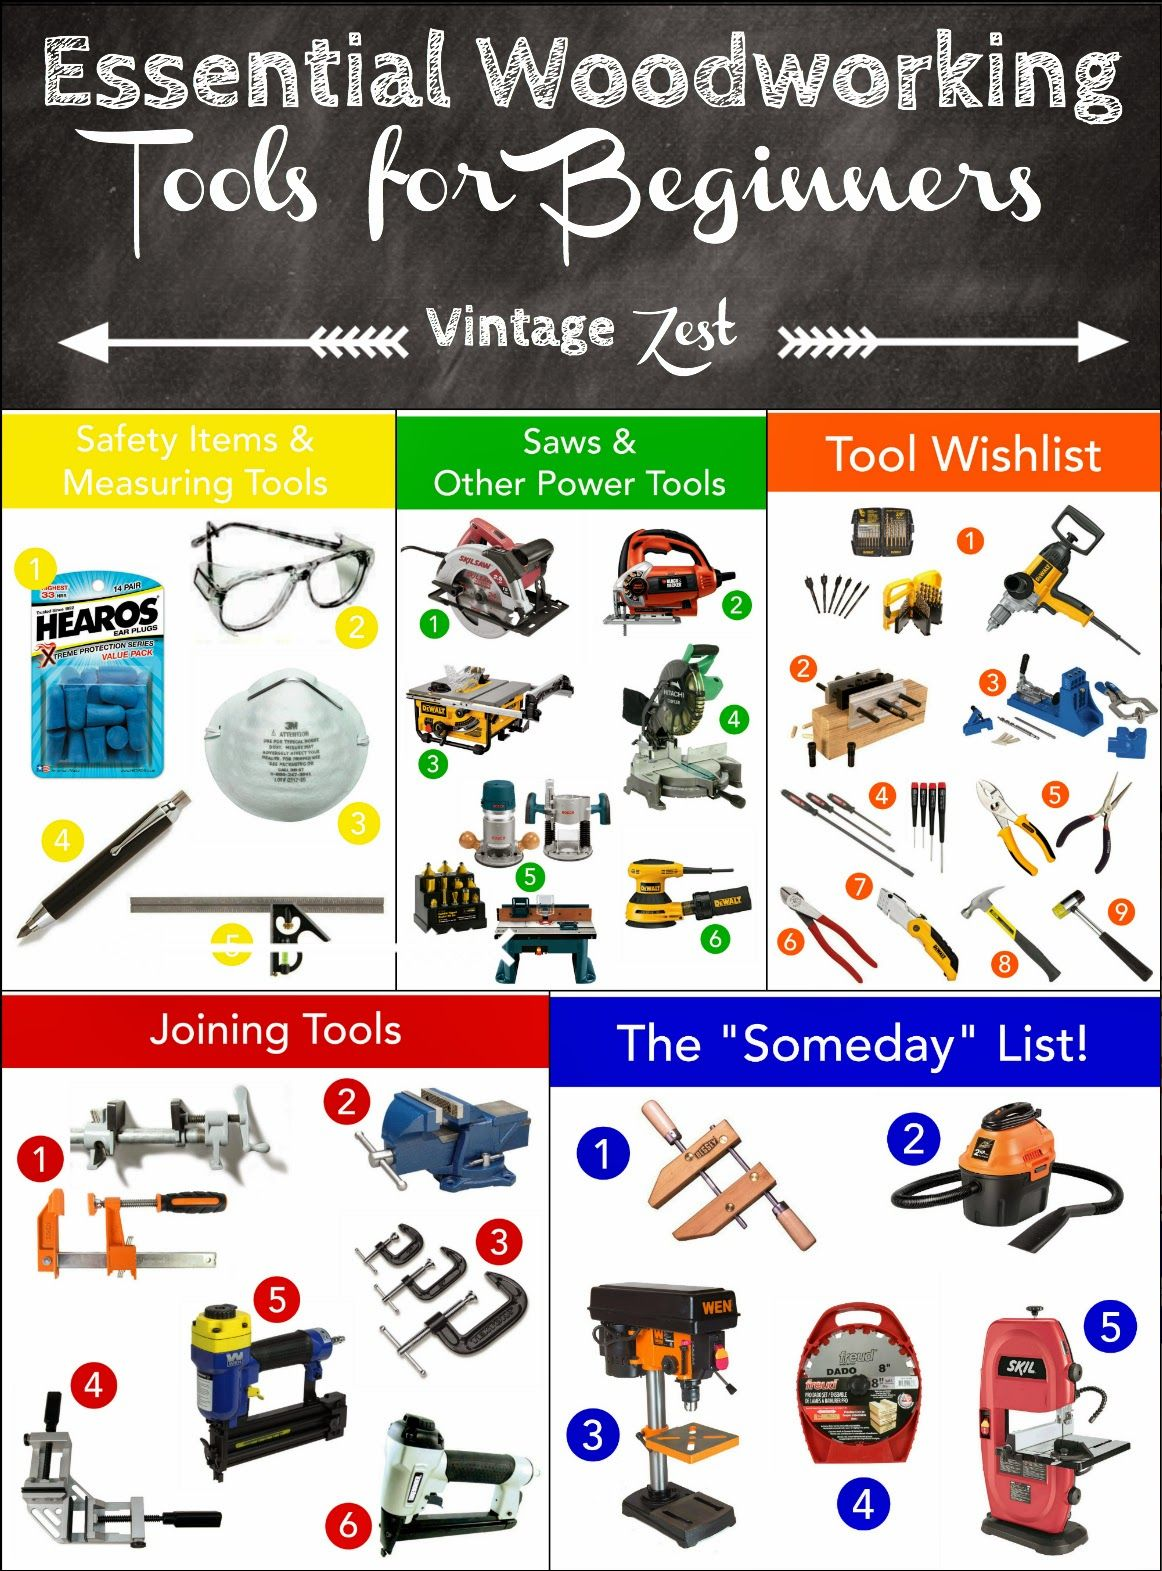 Working with pallets 5 essential woodworking power tools that won - Essential Woodworking Tools For Beginners A Wishlist On Diane S Vintage